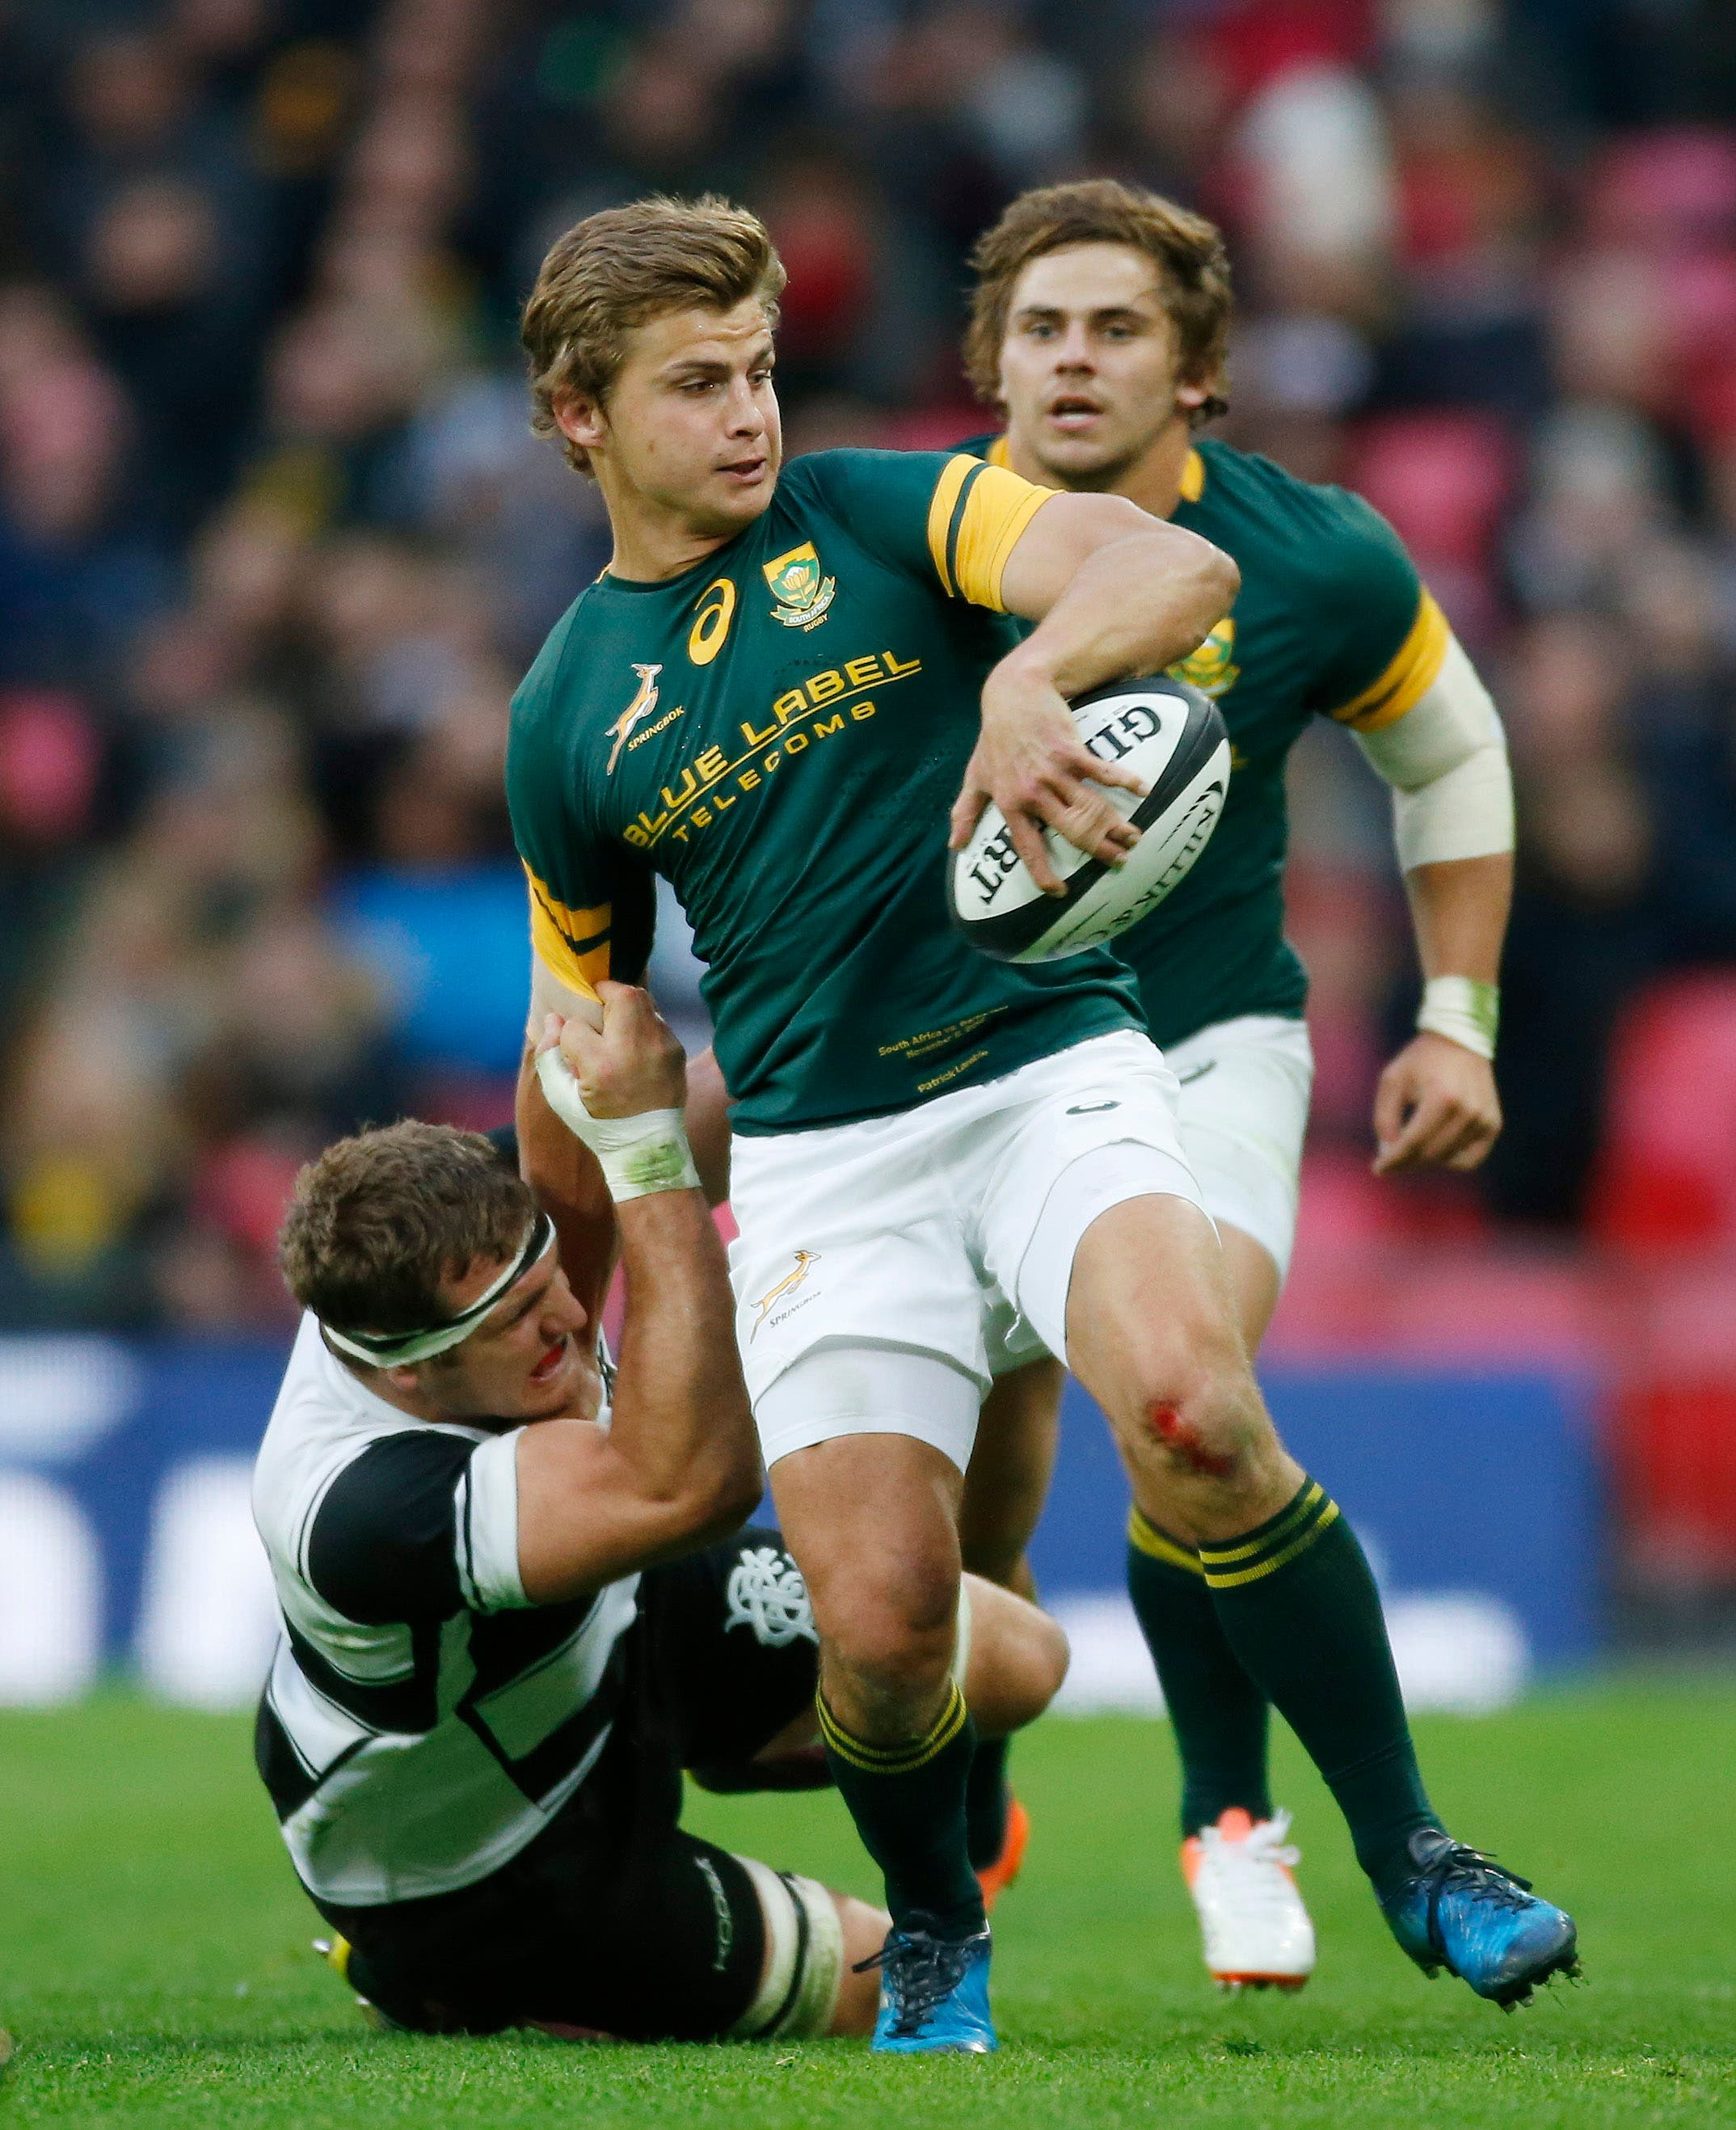 South Africa S Pat Lambie Is Tackled By Barbarians Luke